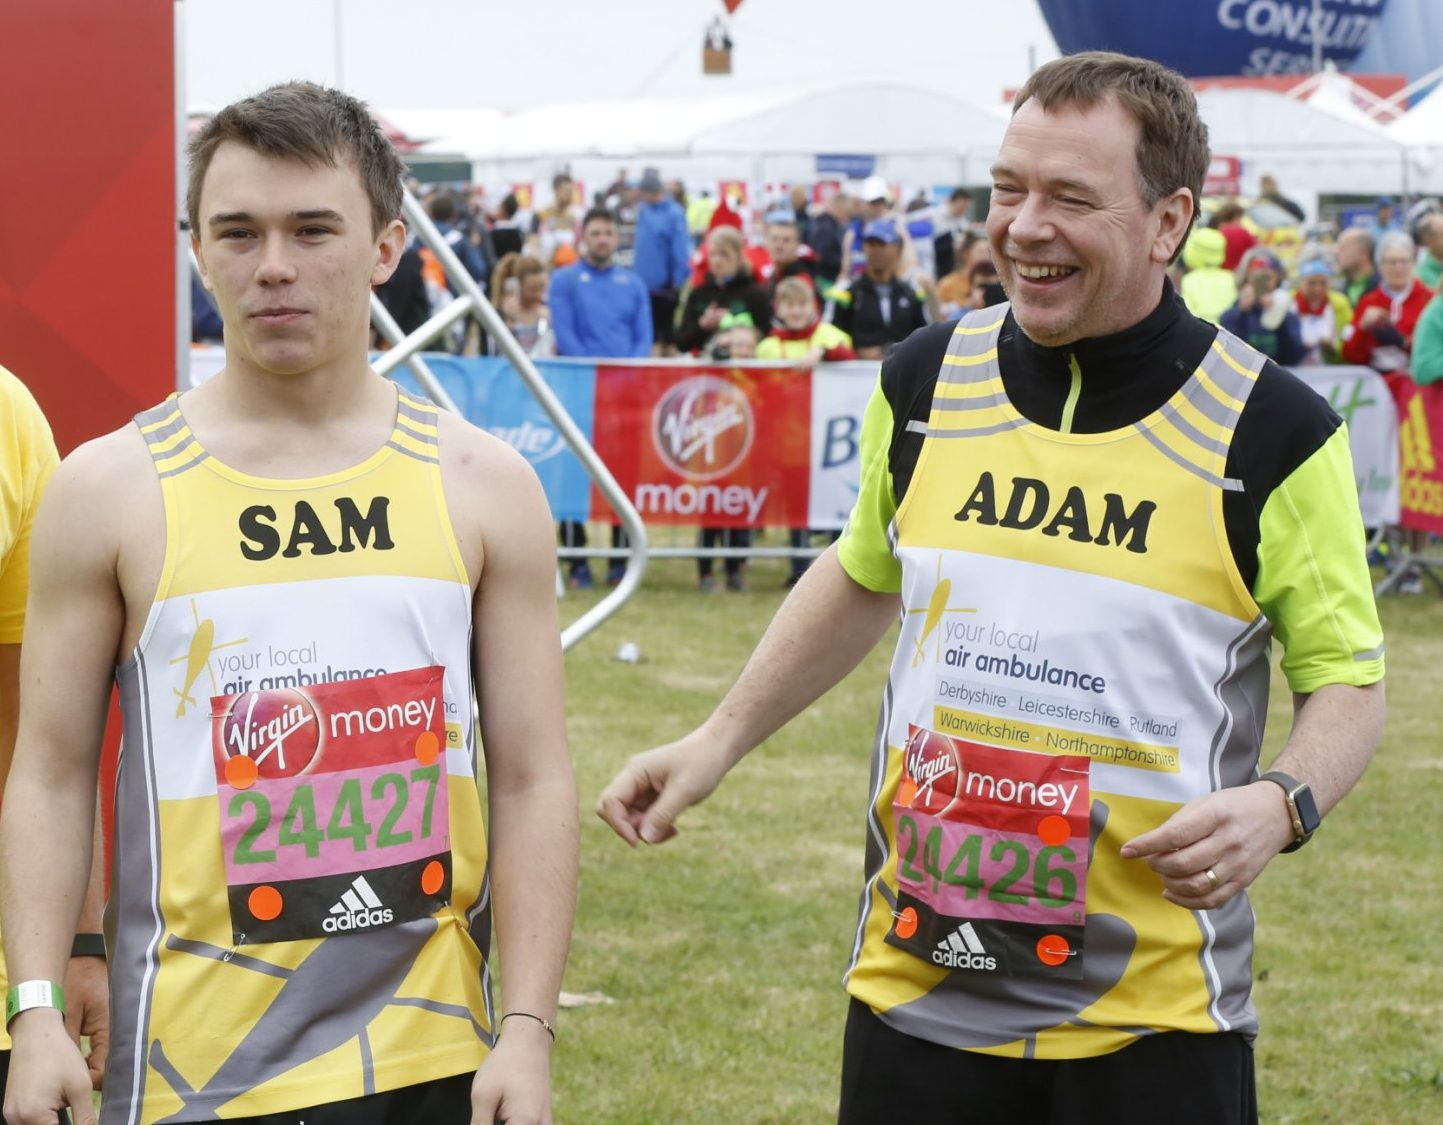 EastEnders star Adam Woodyatt sets off on the London Marathon with son – and he's hoping to finish within seven hours